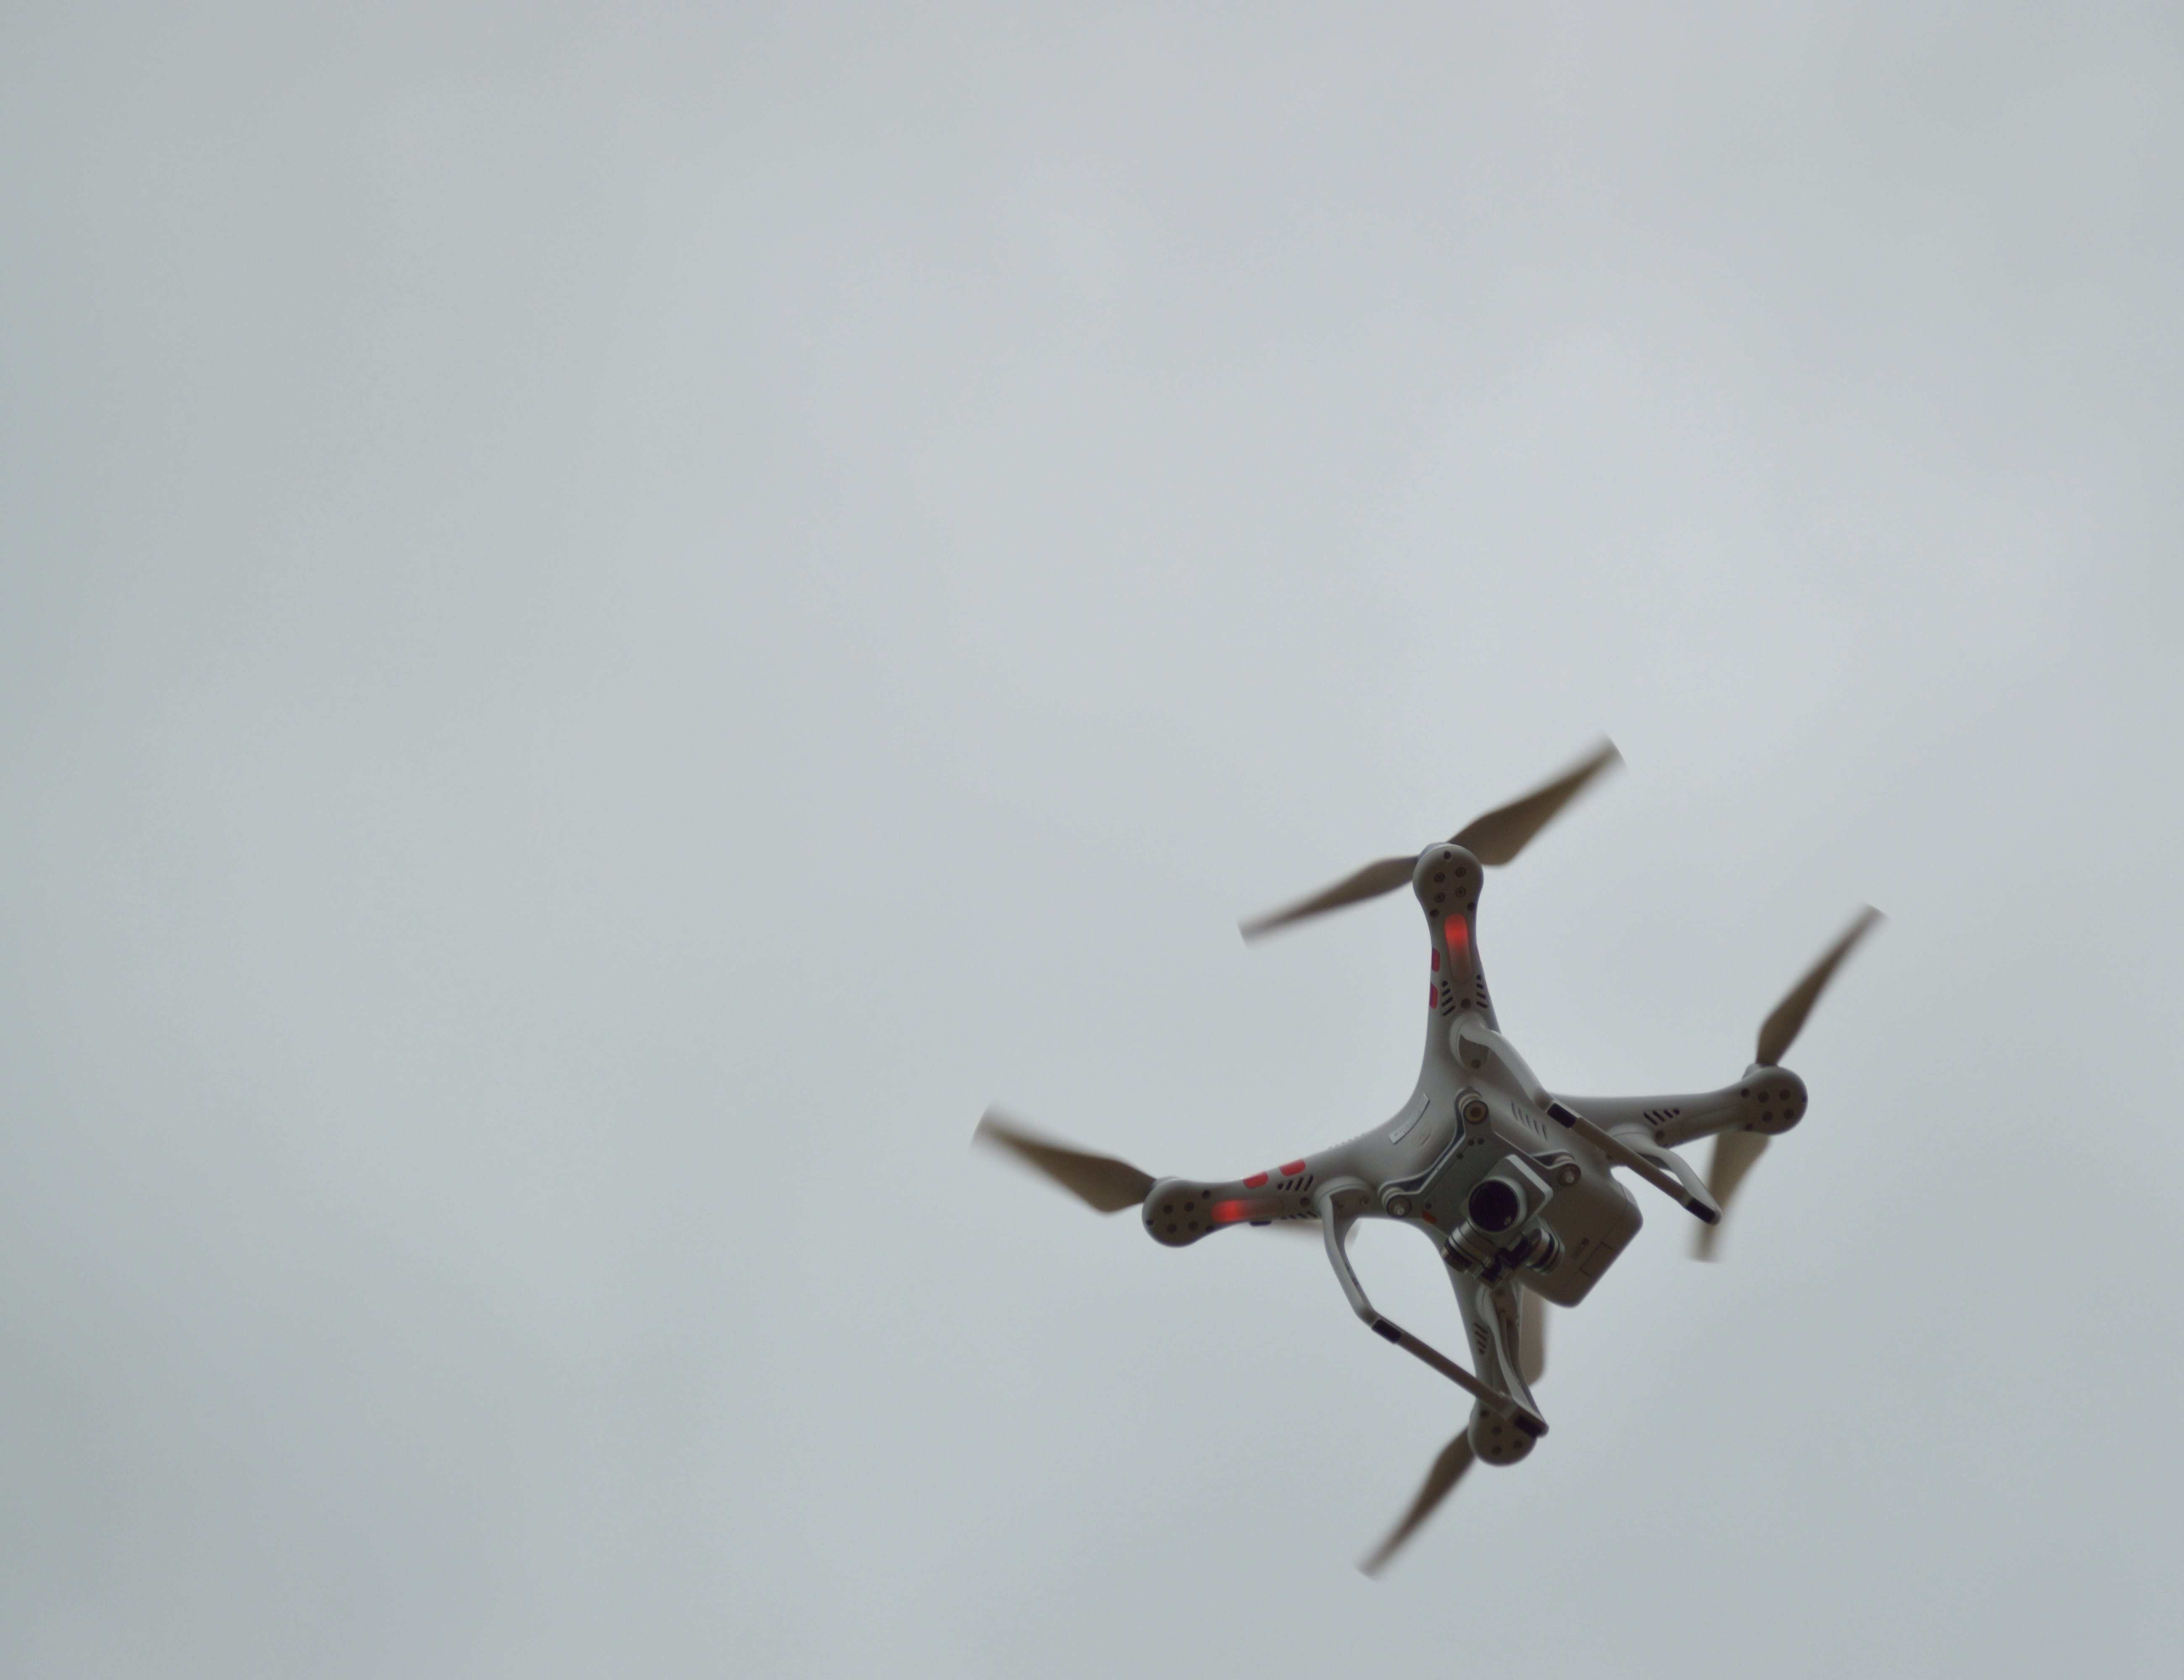 Gray Quadcopter on Flight